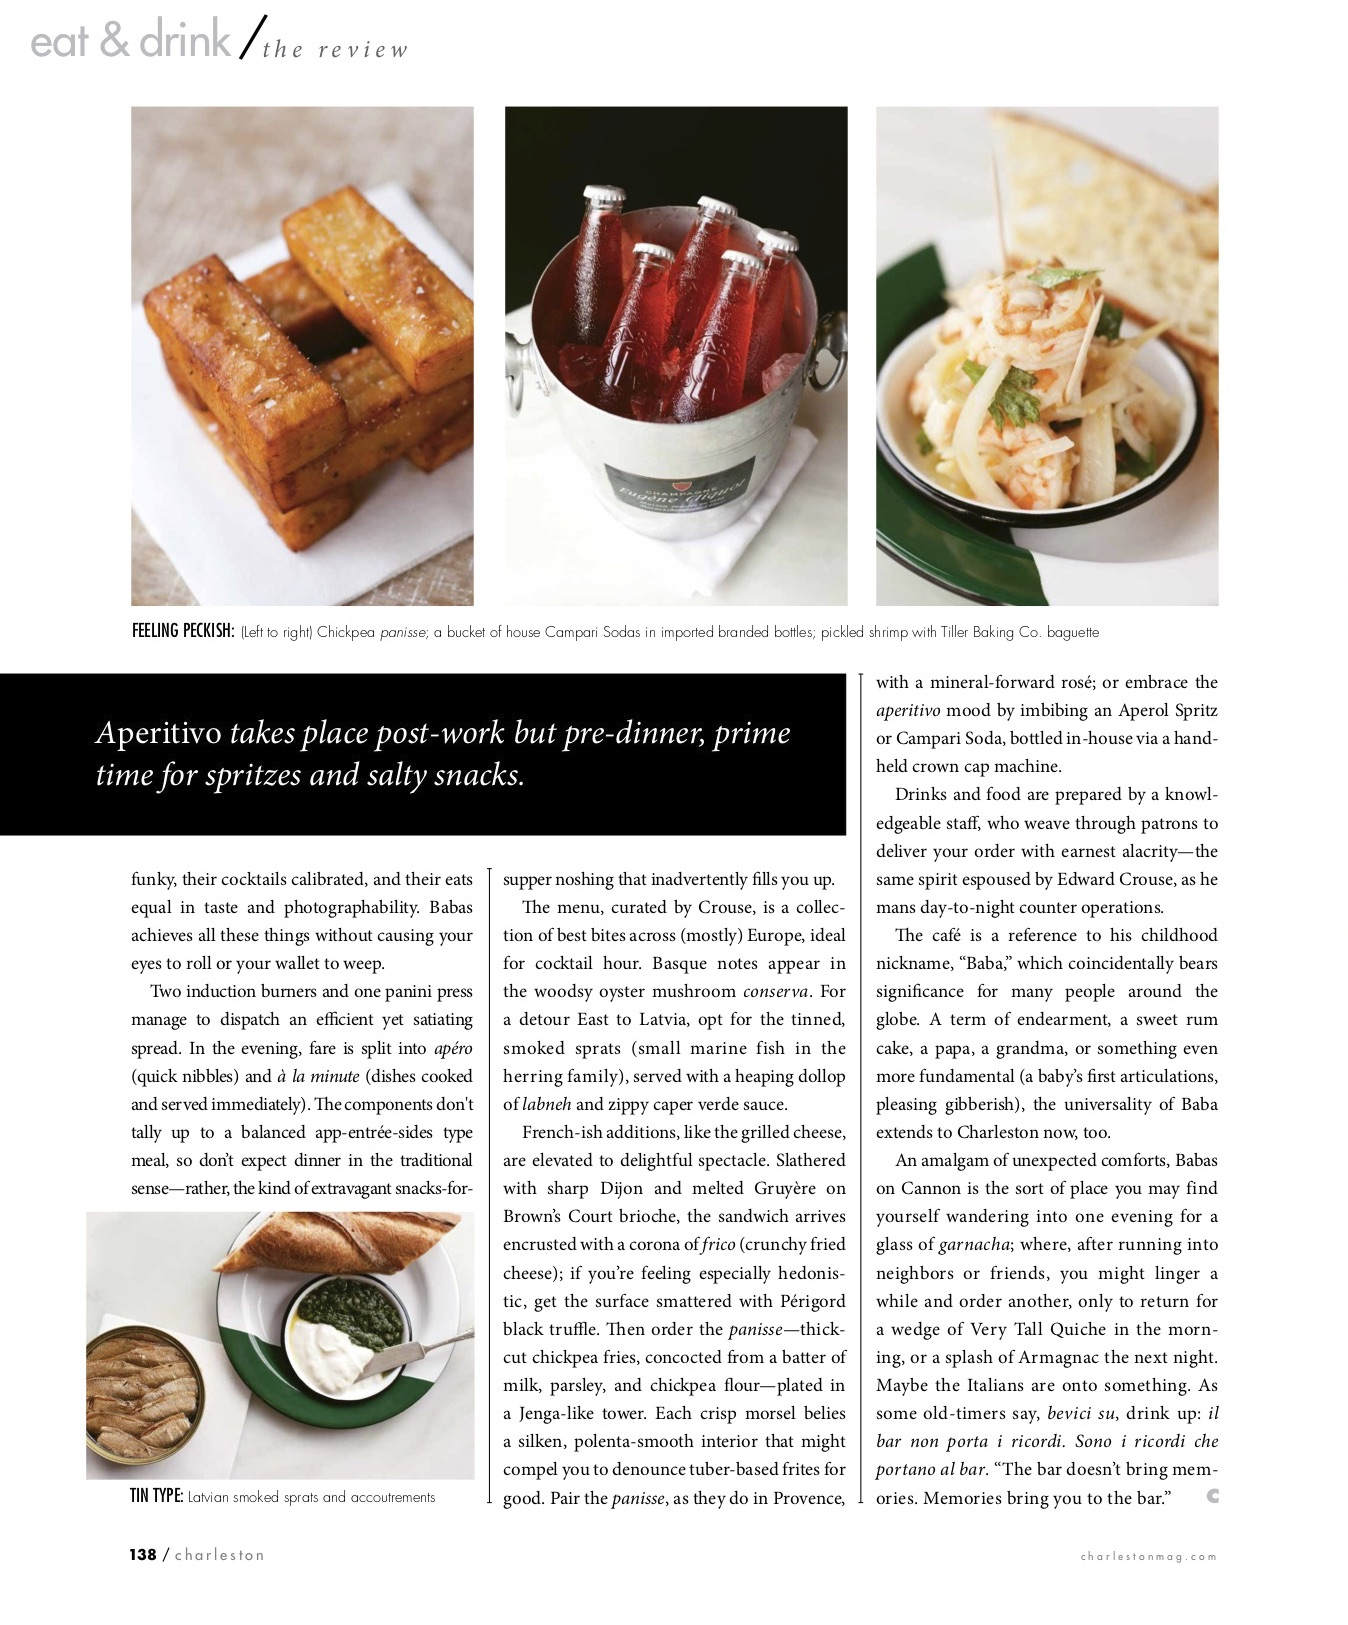 babas review spread 2.jpg